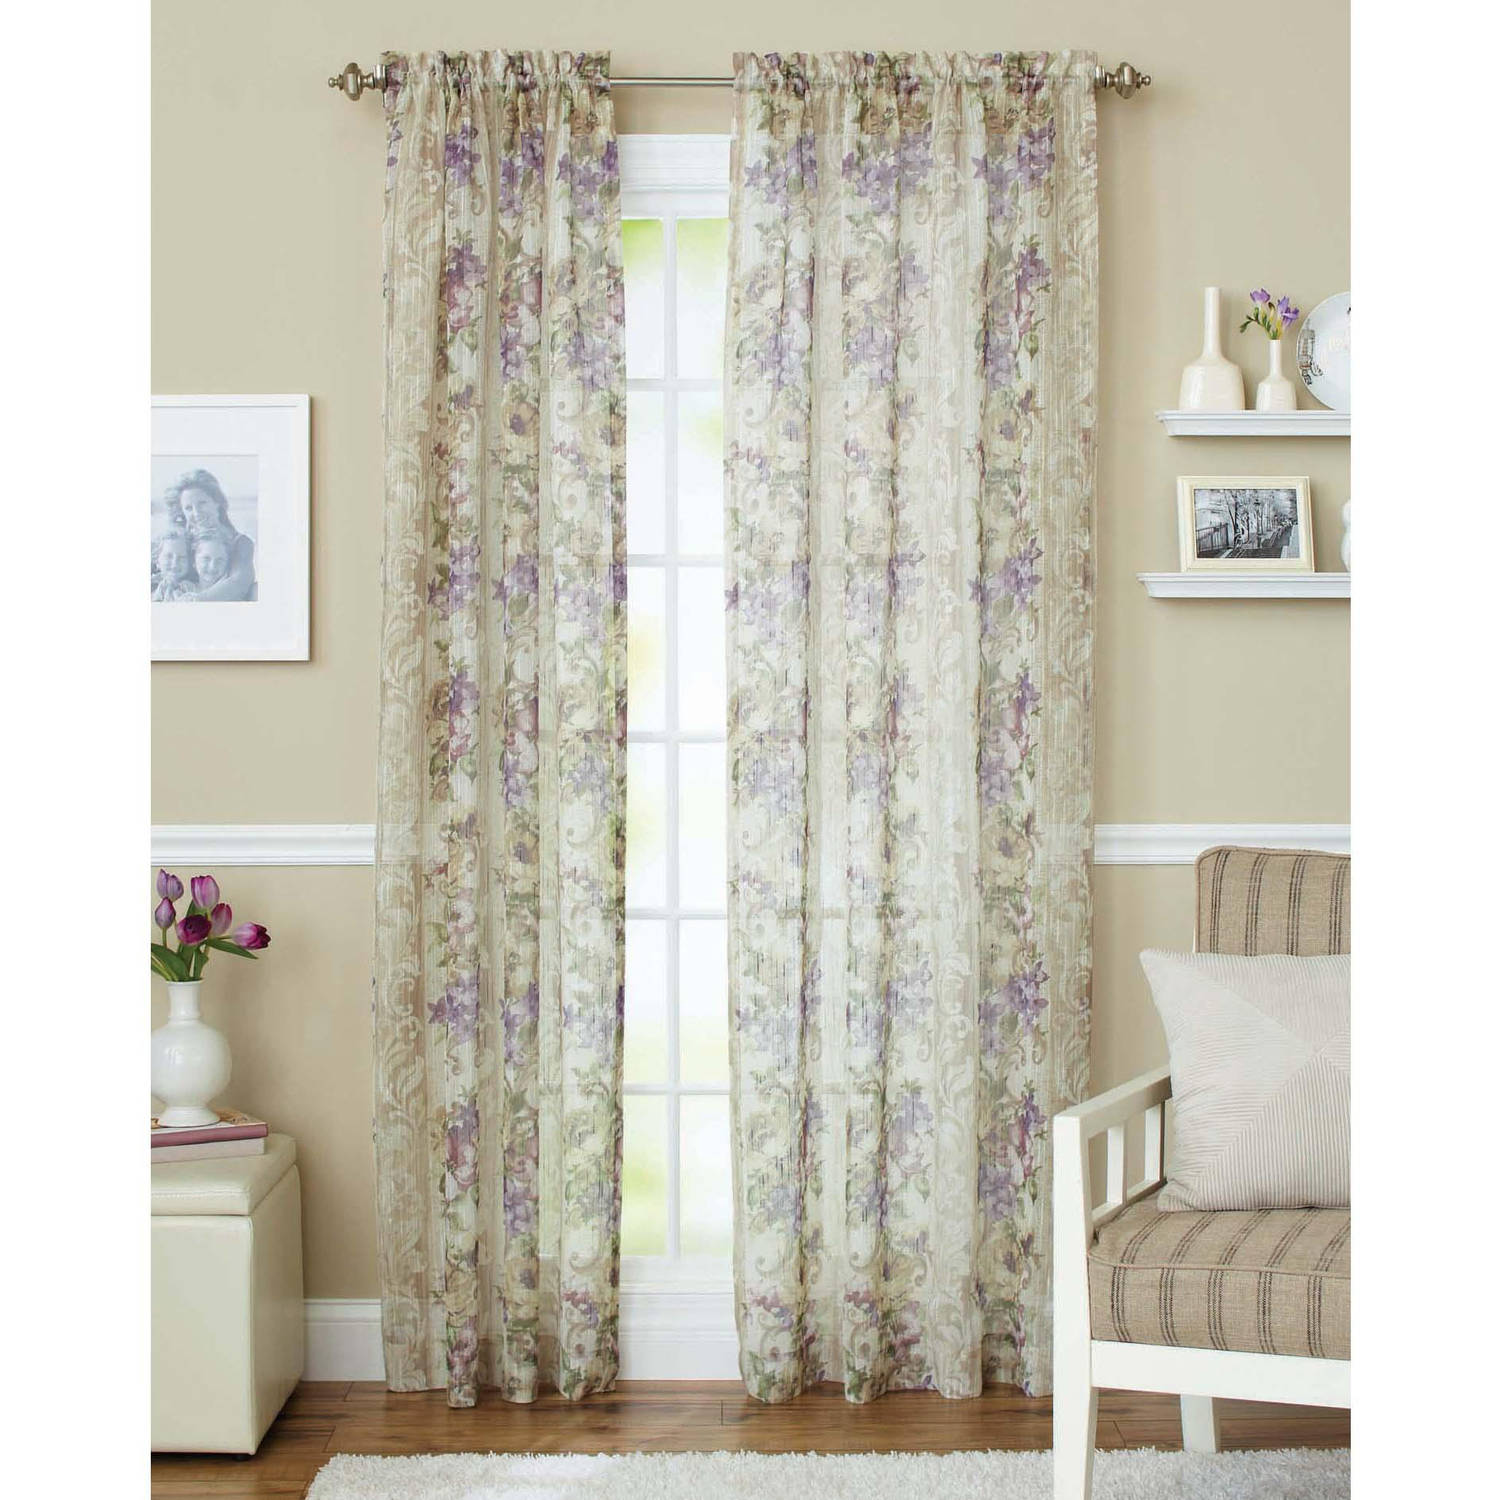 Attirant Better Homes And Gardens Roses Sheer Curtain Panel   Walmart.com